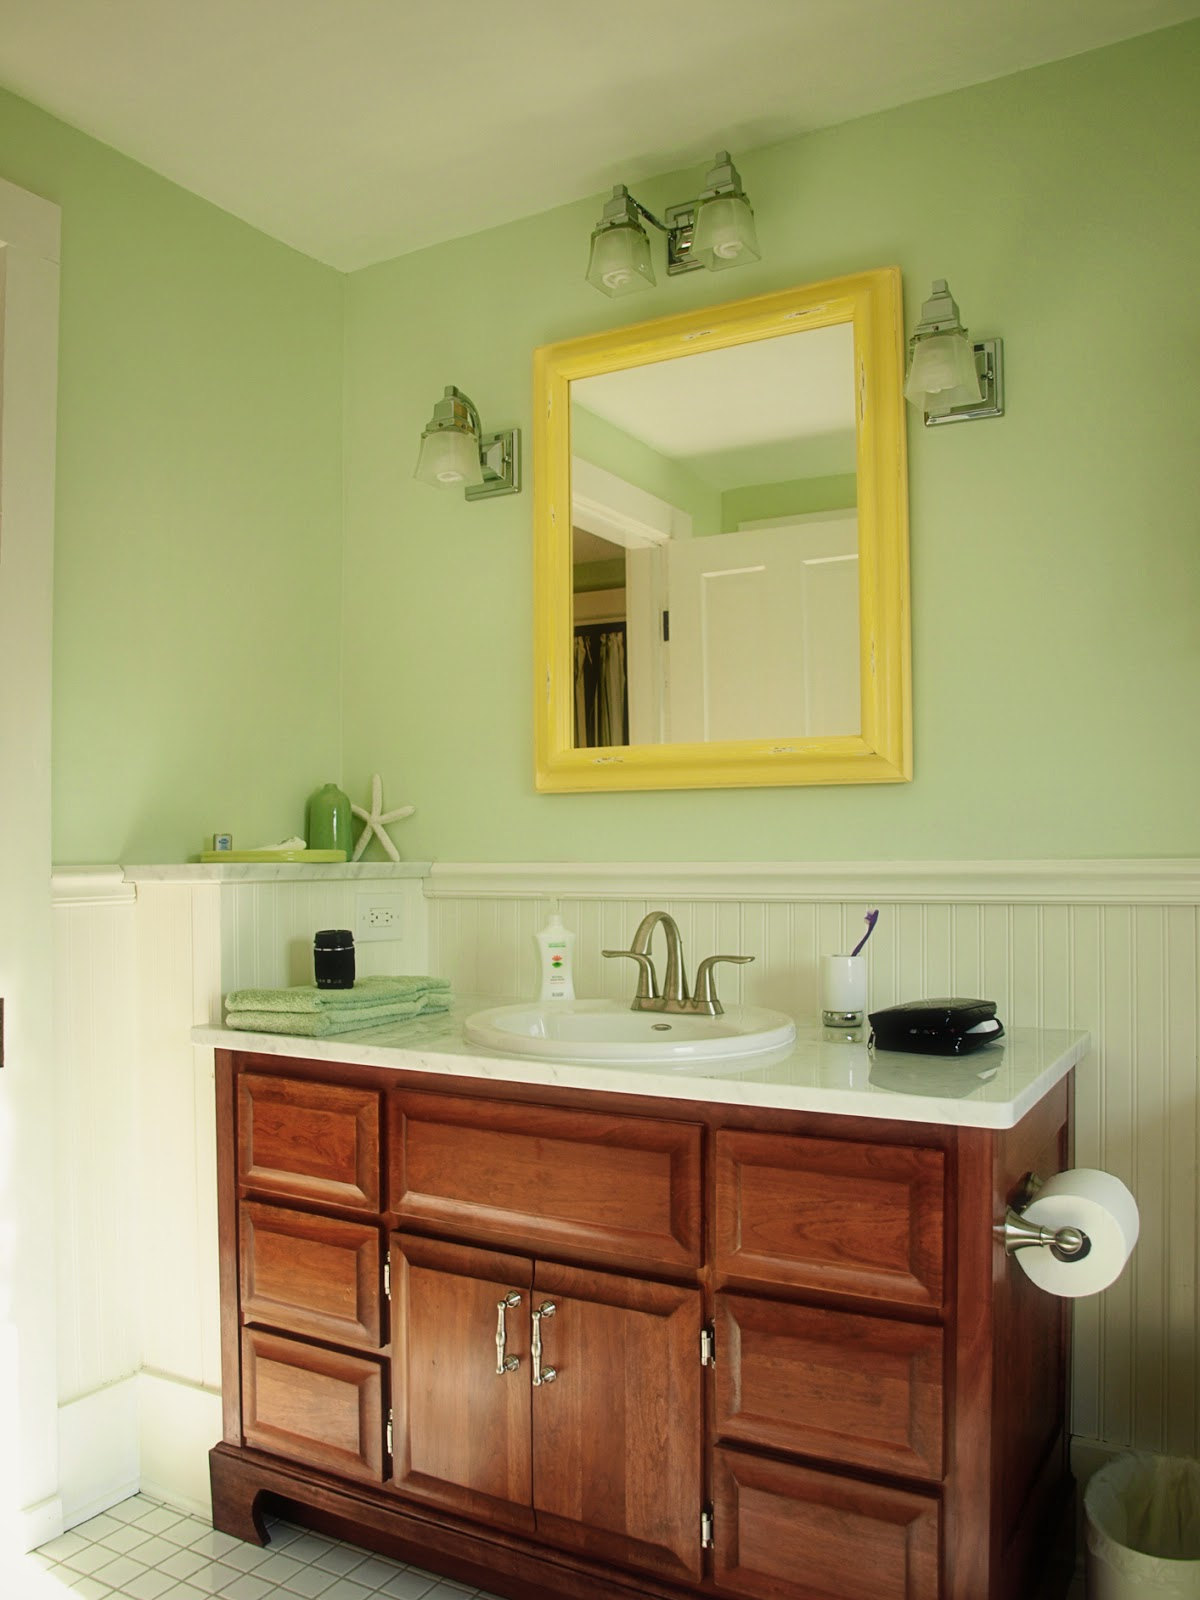 Farmhouse bathroom ideas bathroom designs for Bathroom looks ideas